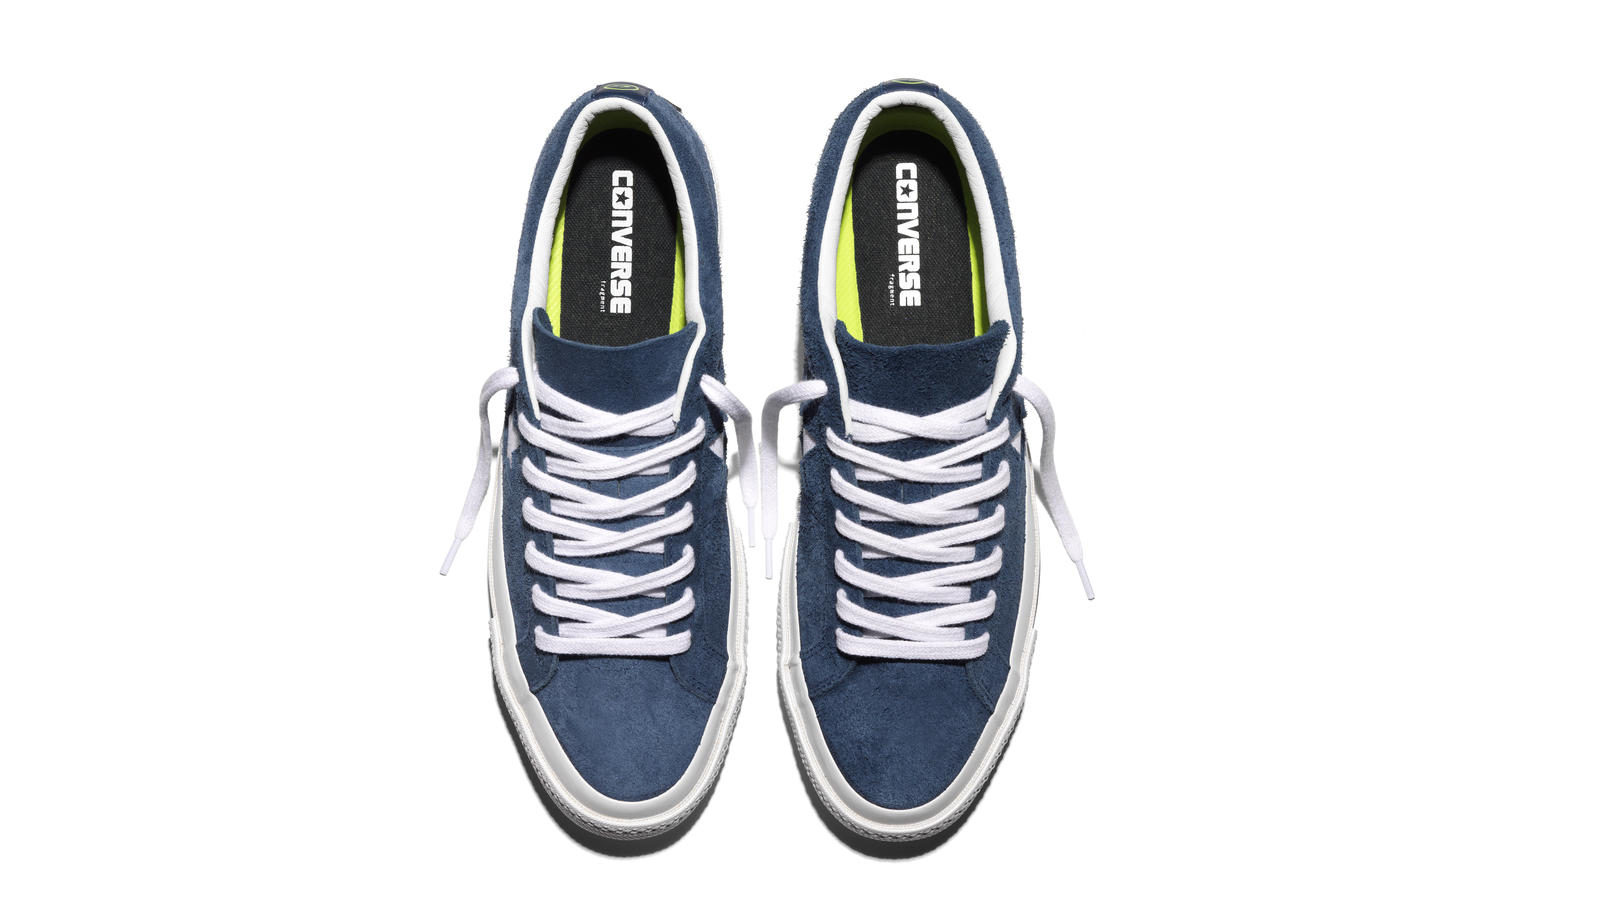 converse one star 74 fragment